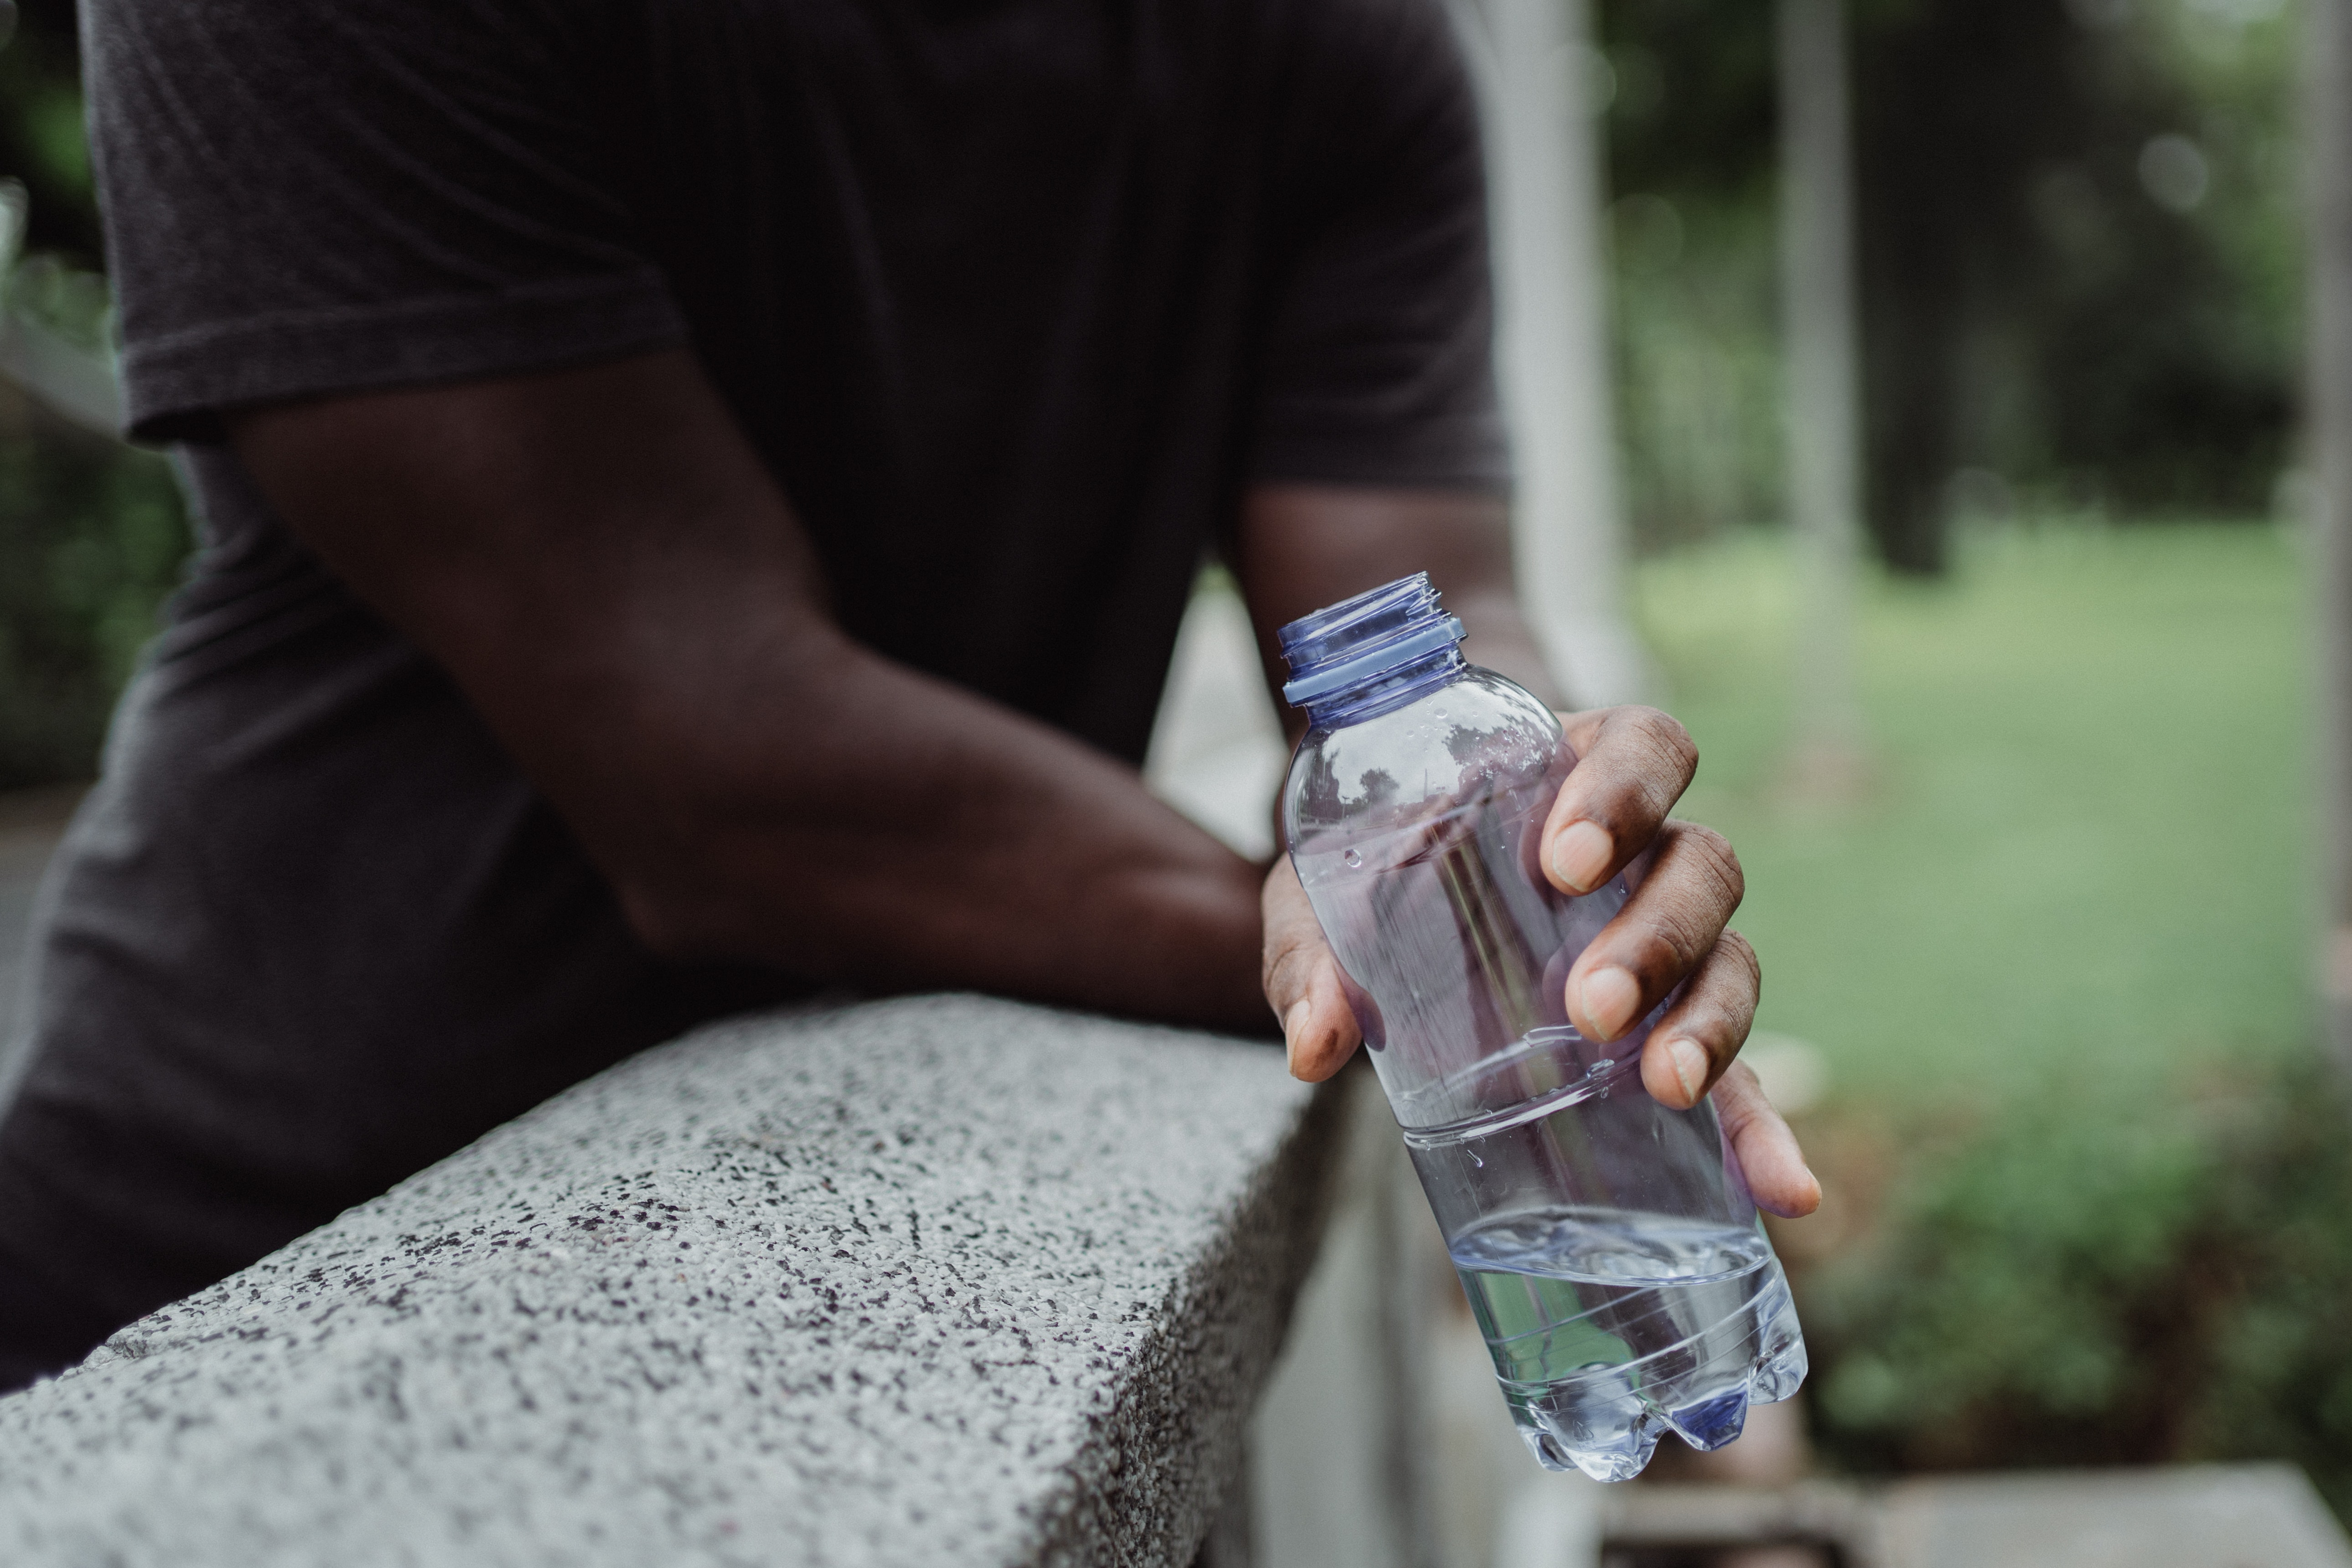 Stay hydrated, drink lots of water